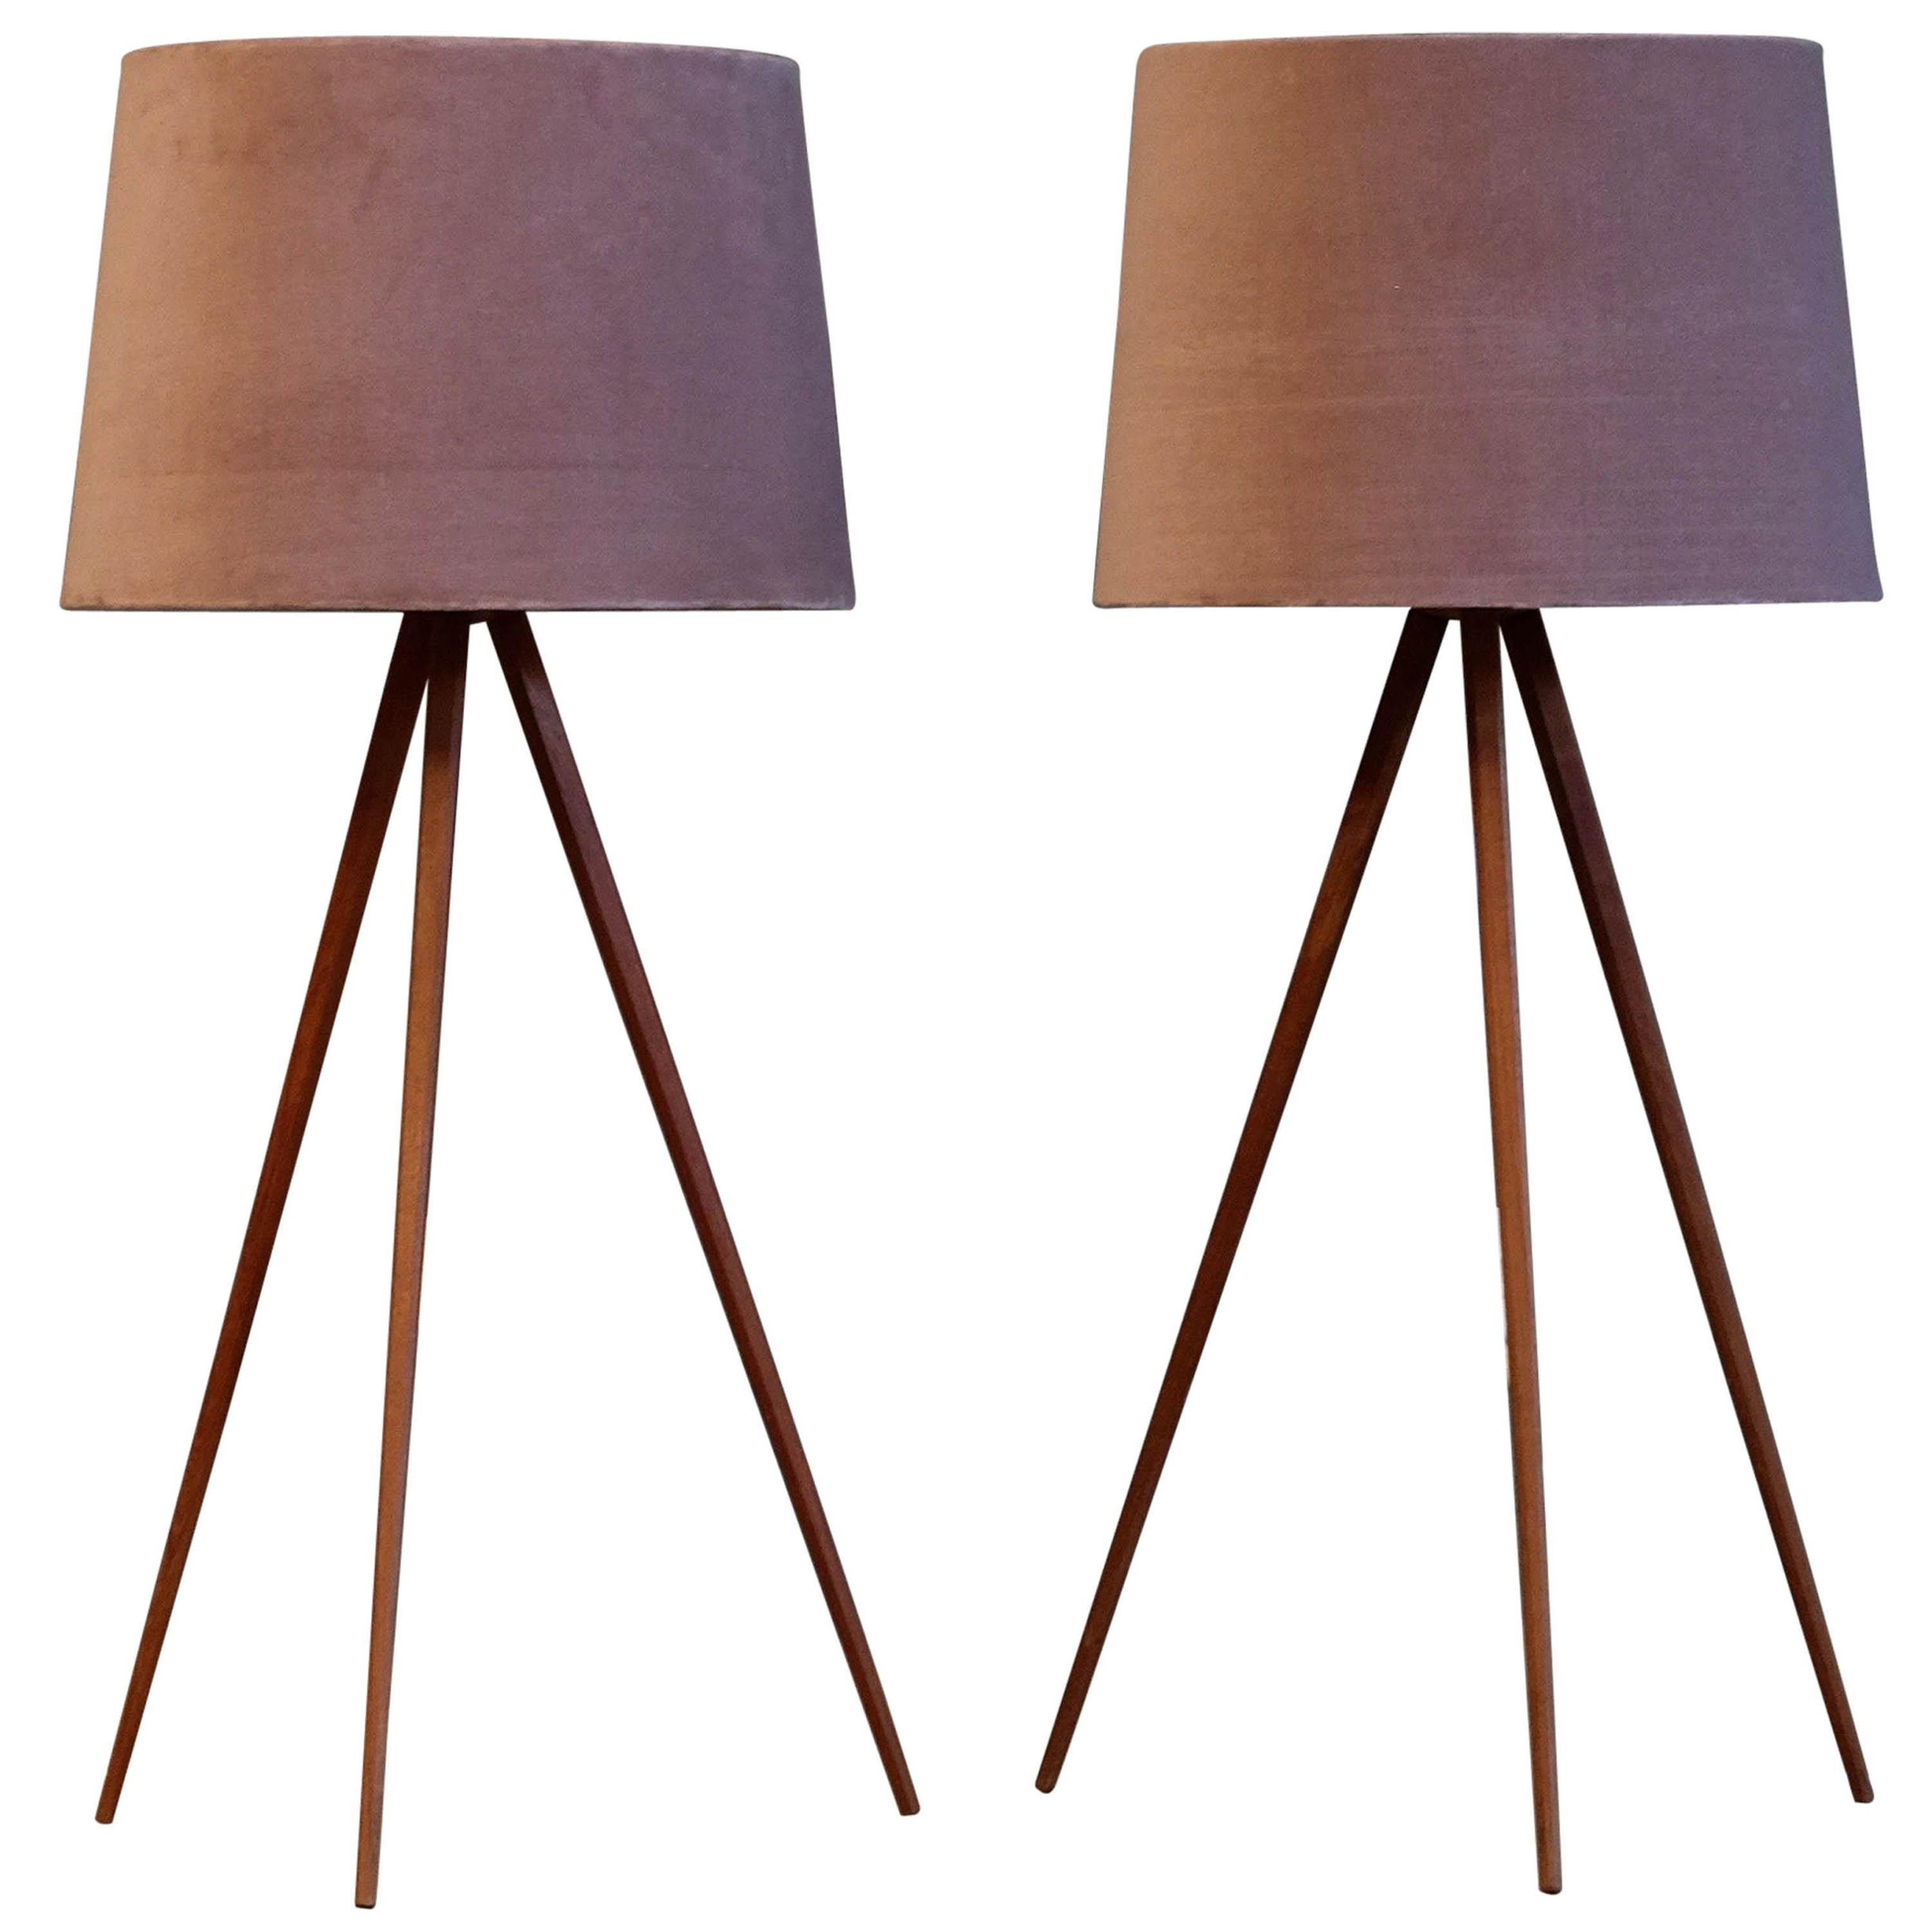 Rare Pair of Swedish Table or Floor Lamps, 1950s